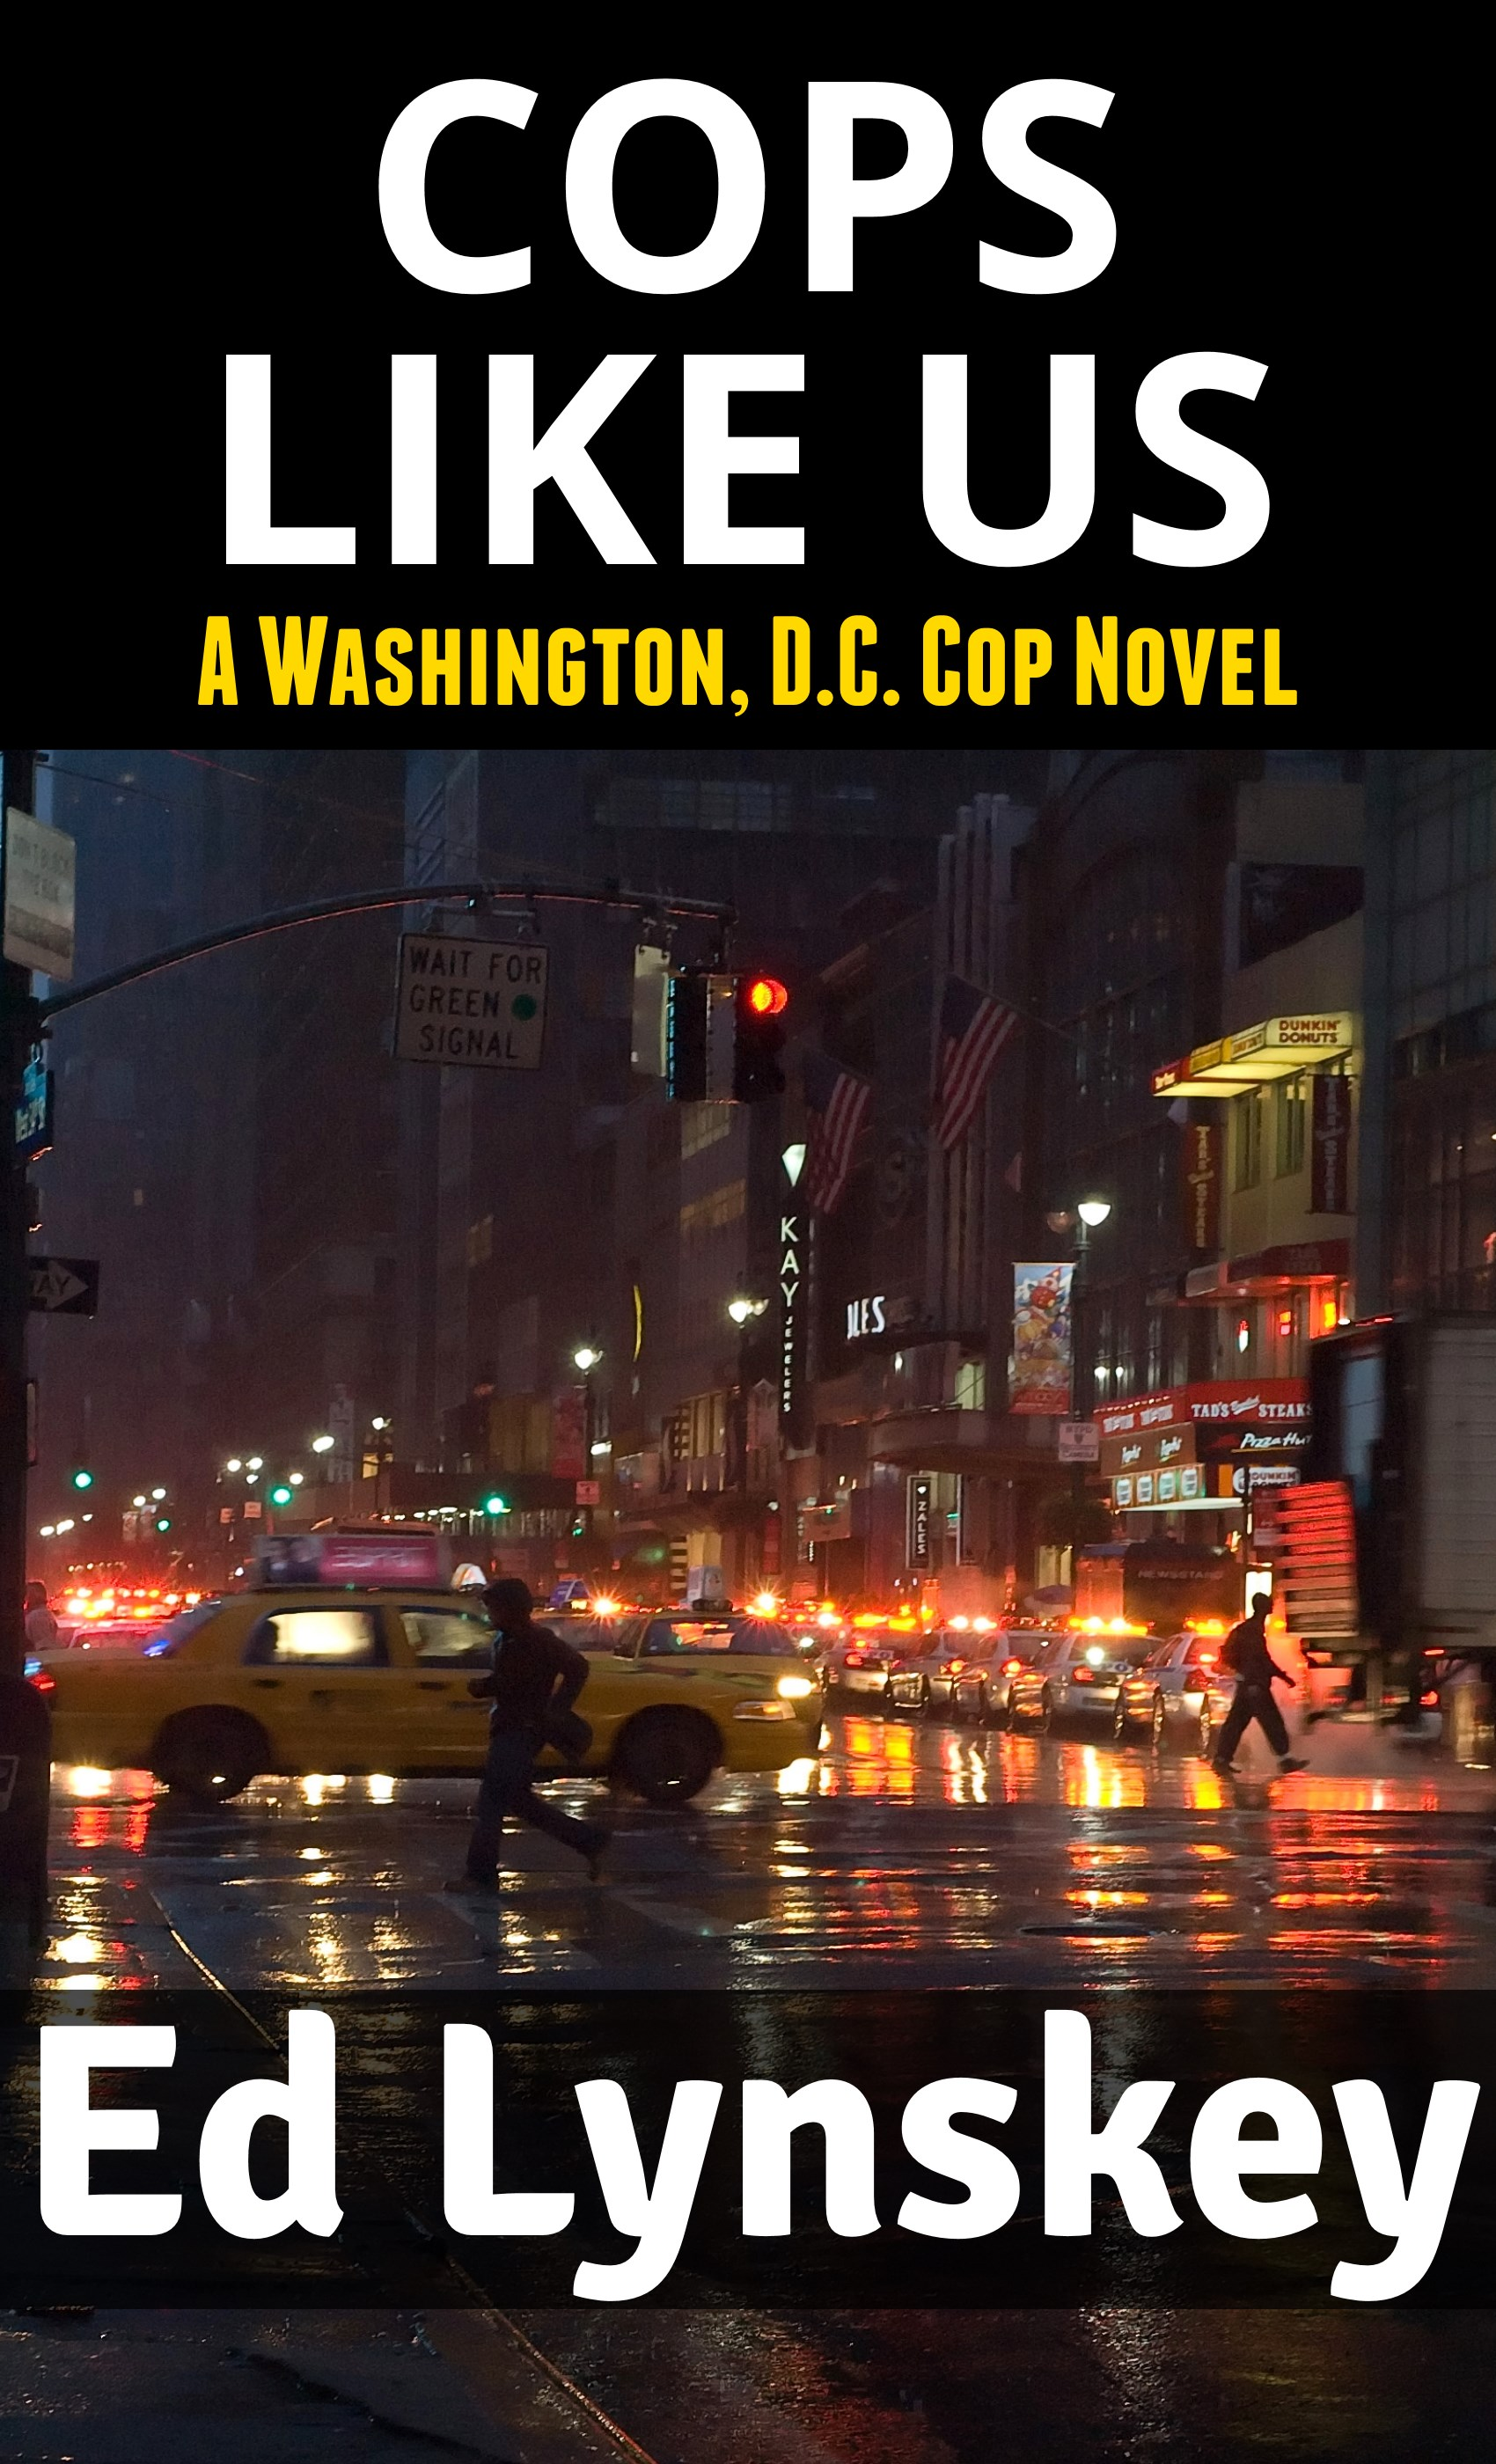 Cops Like Us: A Washington, D.C. Cop Novel